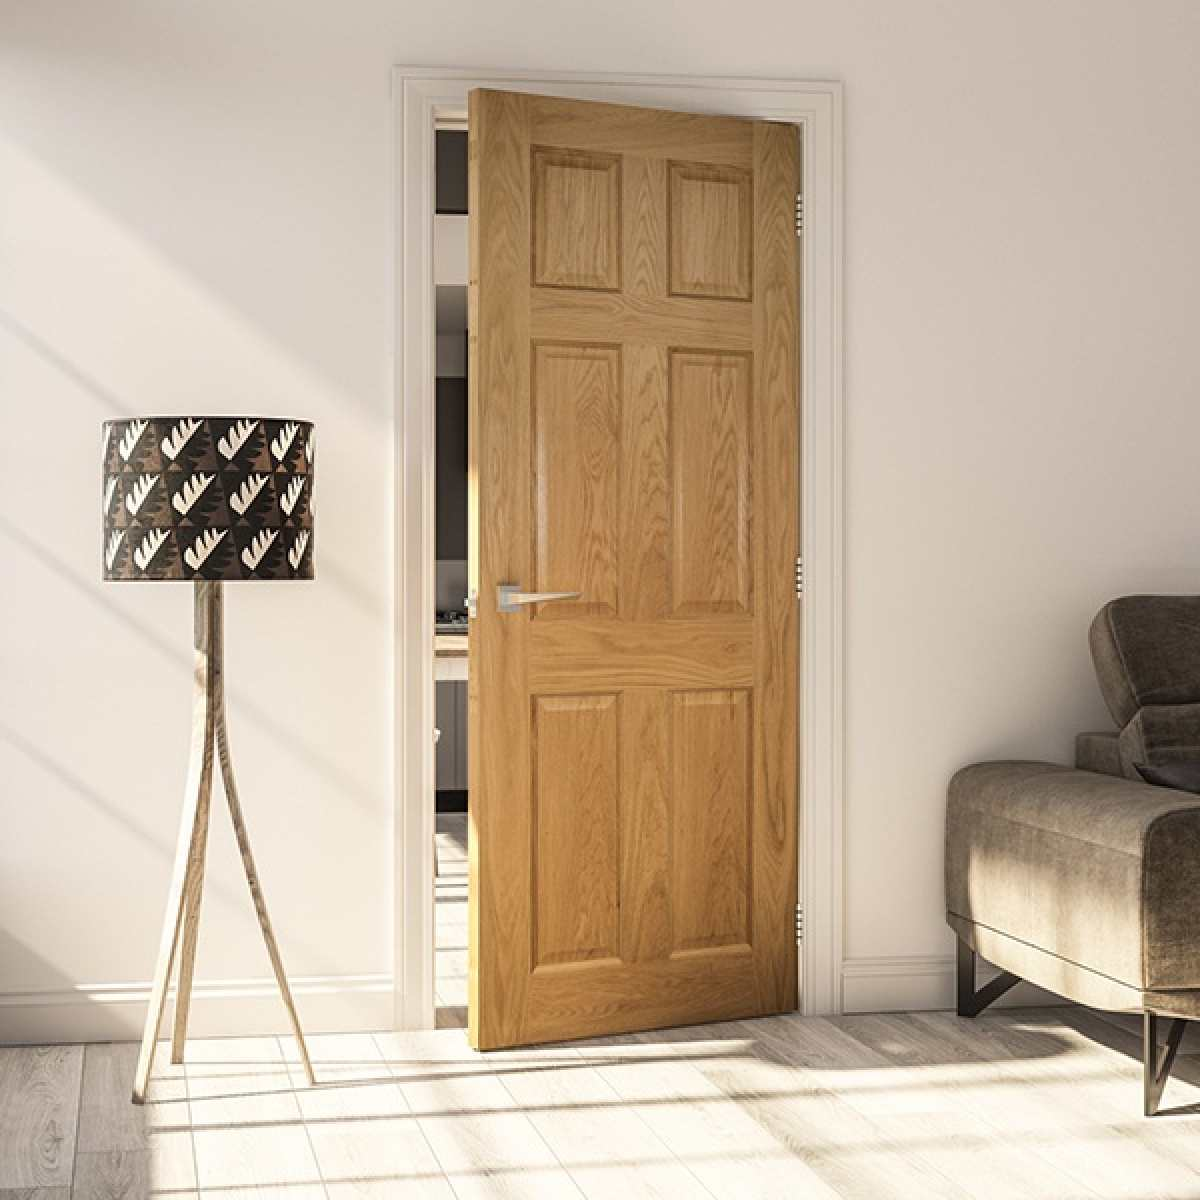 Oxford oak lifestyle websters Image by Websters Timber